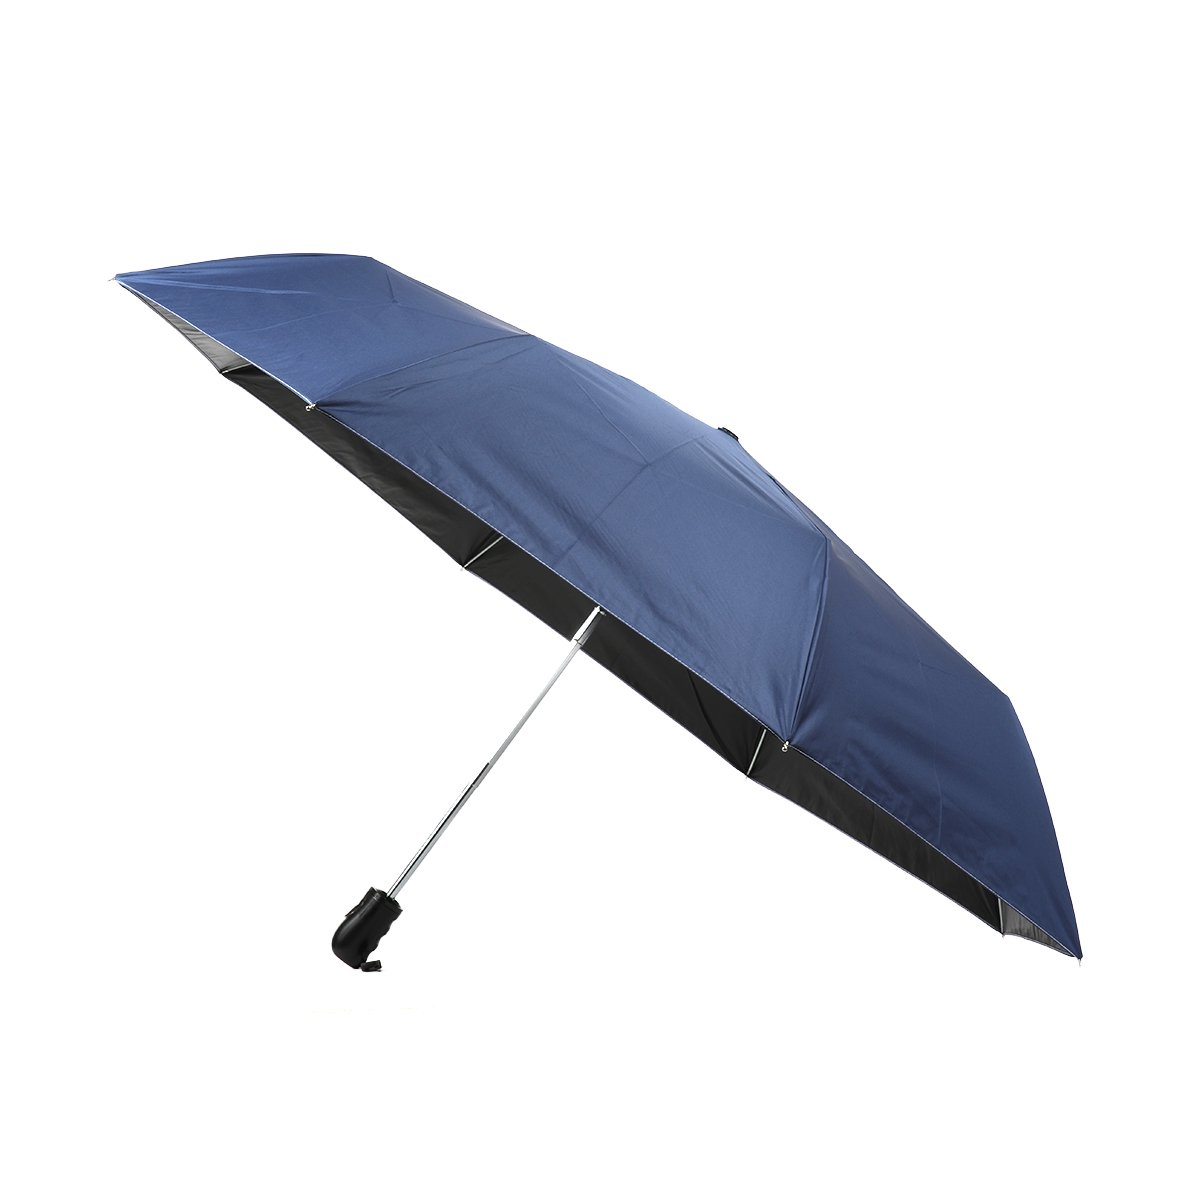 588K UV AUTOMATIC FOLDING UMBRELLA 詳細画像3